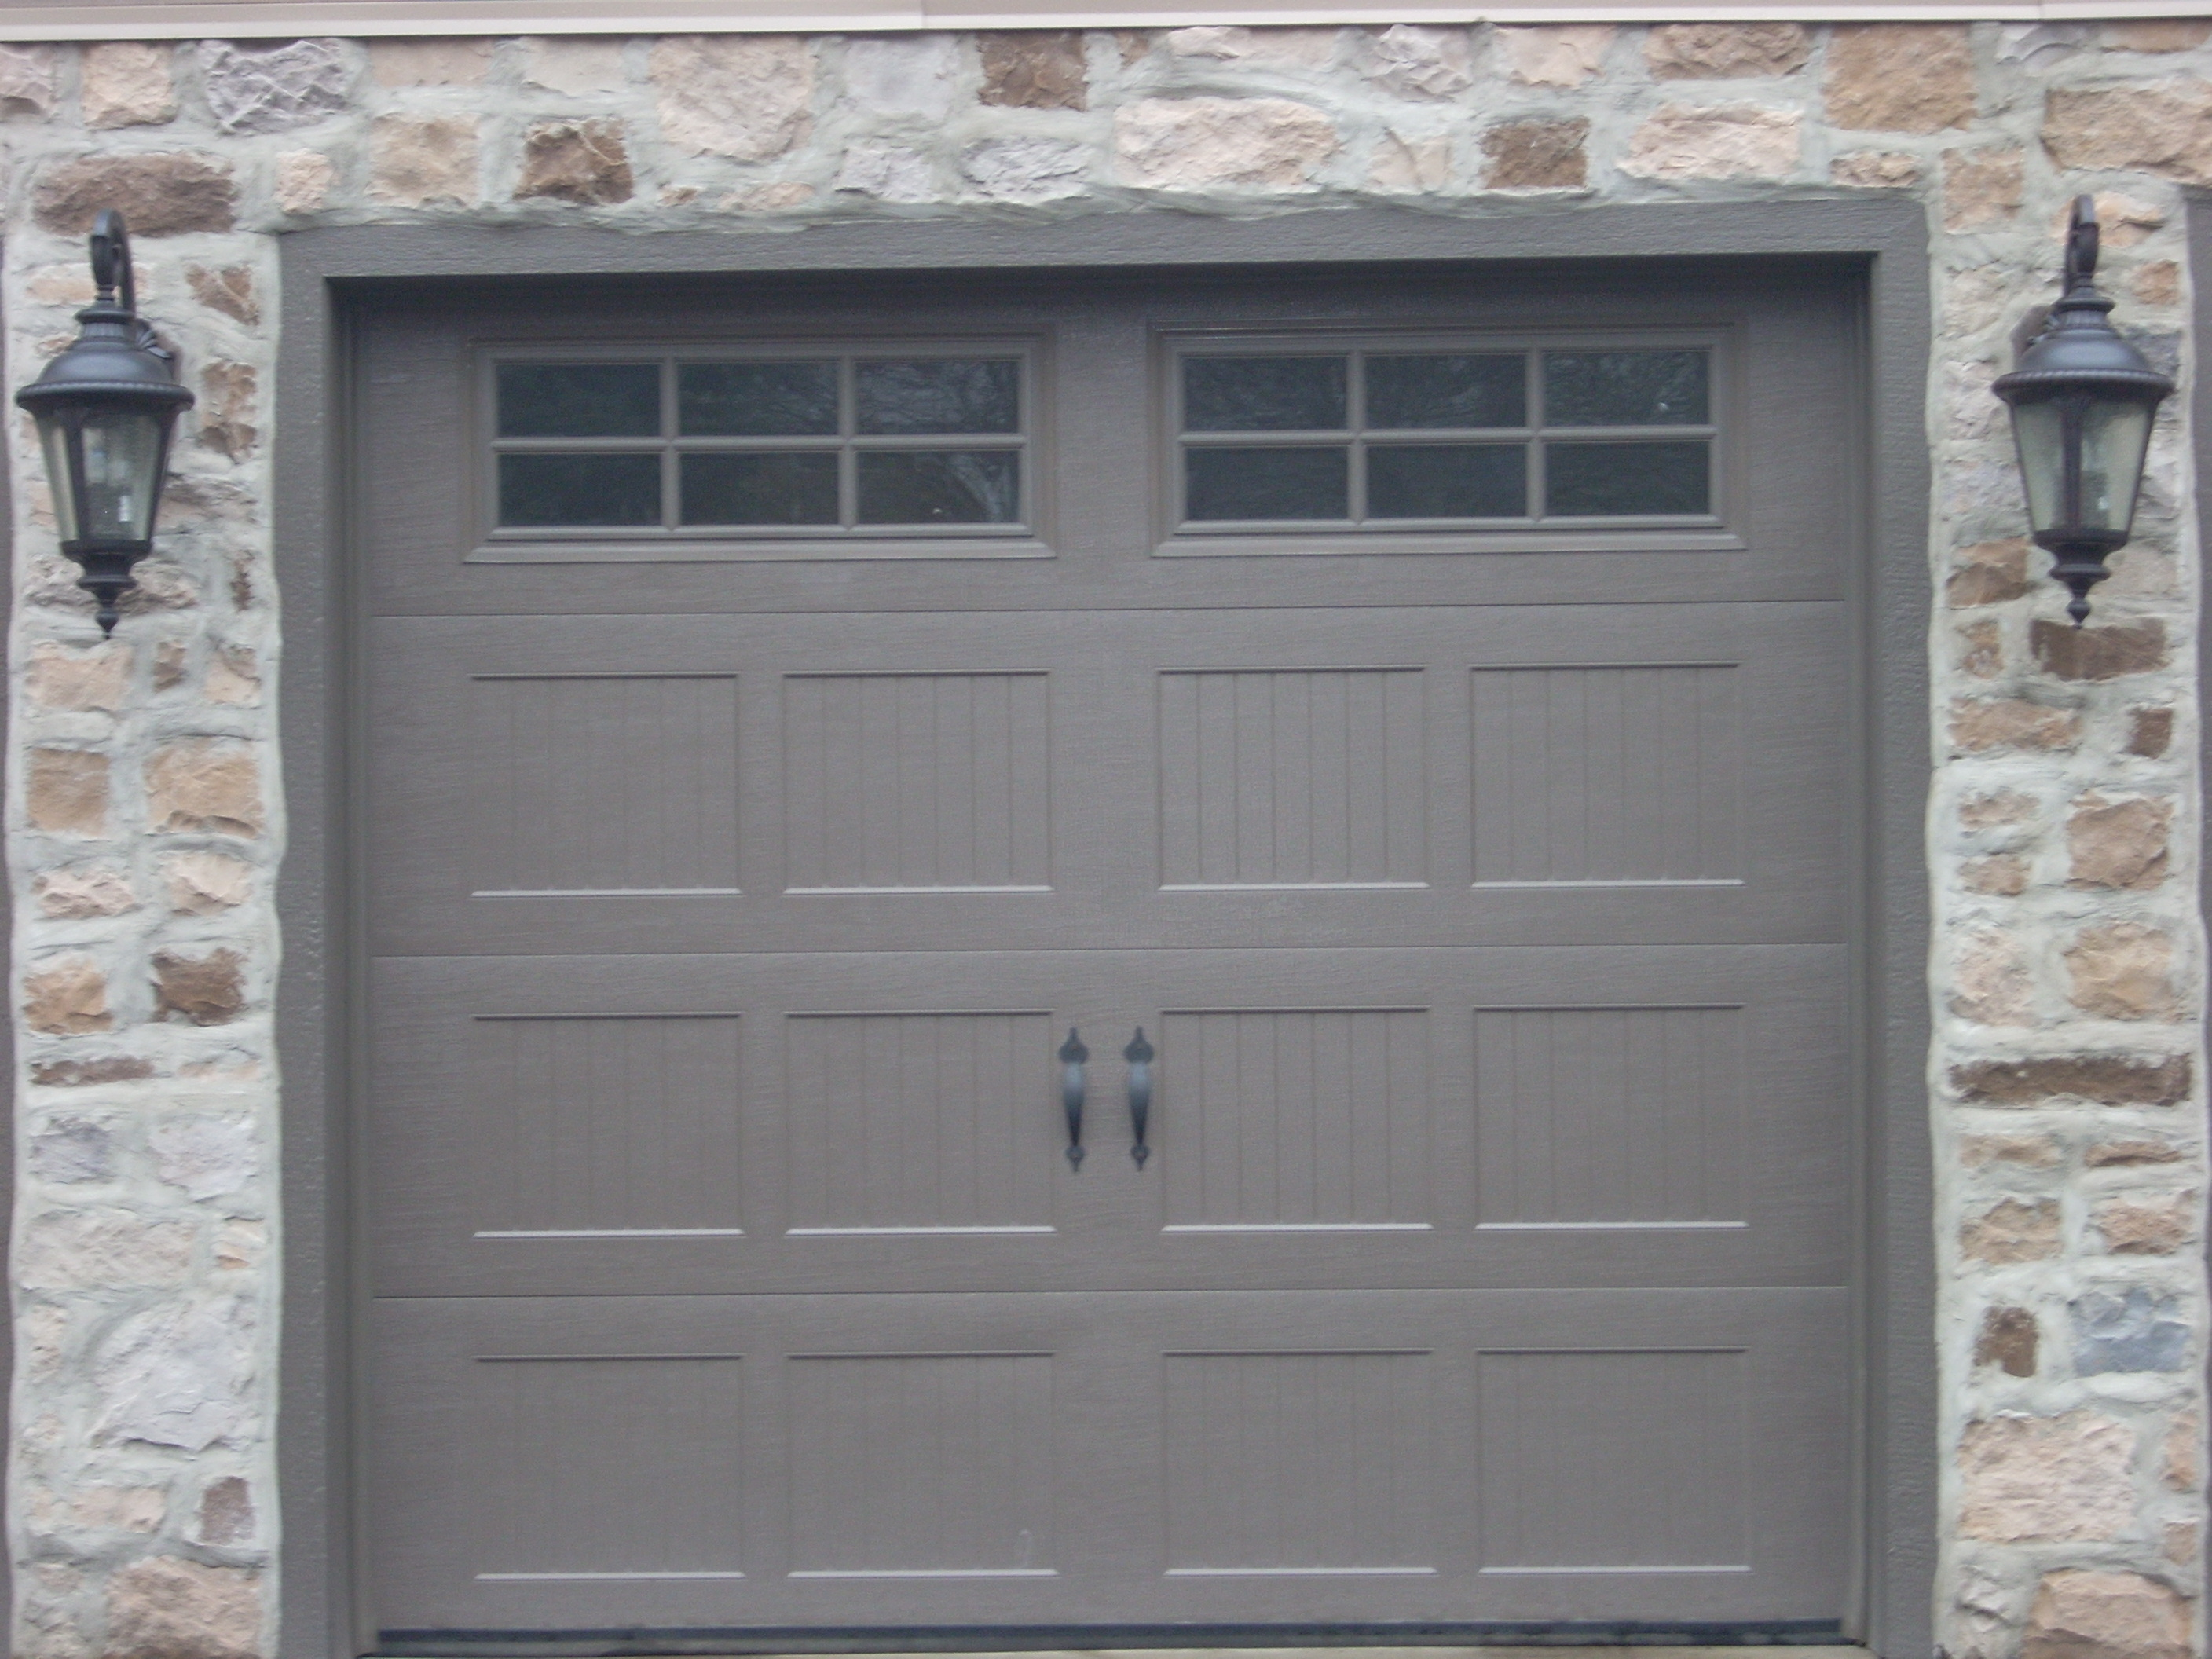 Wayne doors classic steel 8300 sonoma ranch panel Wayne dalton garage doors